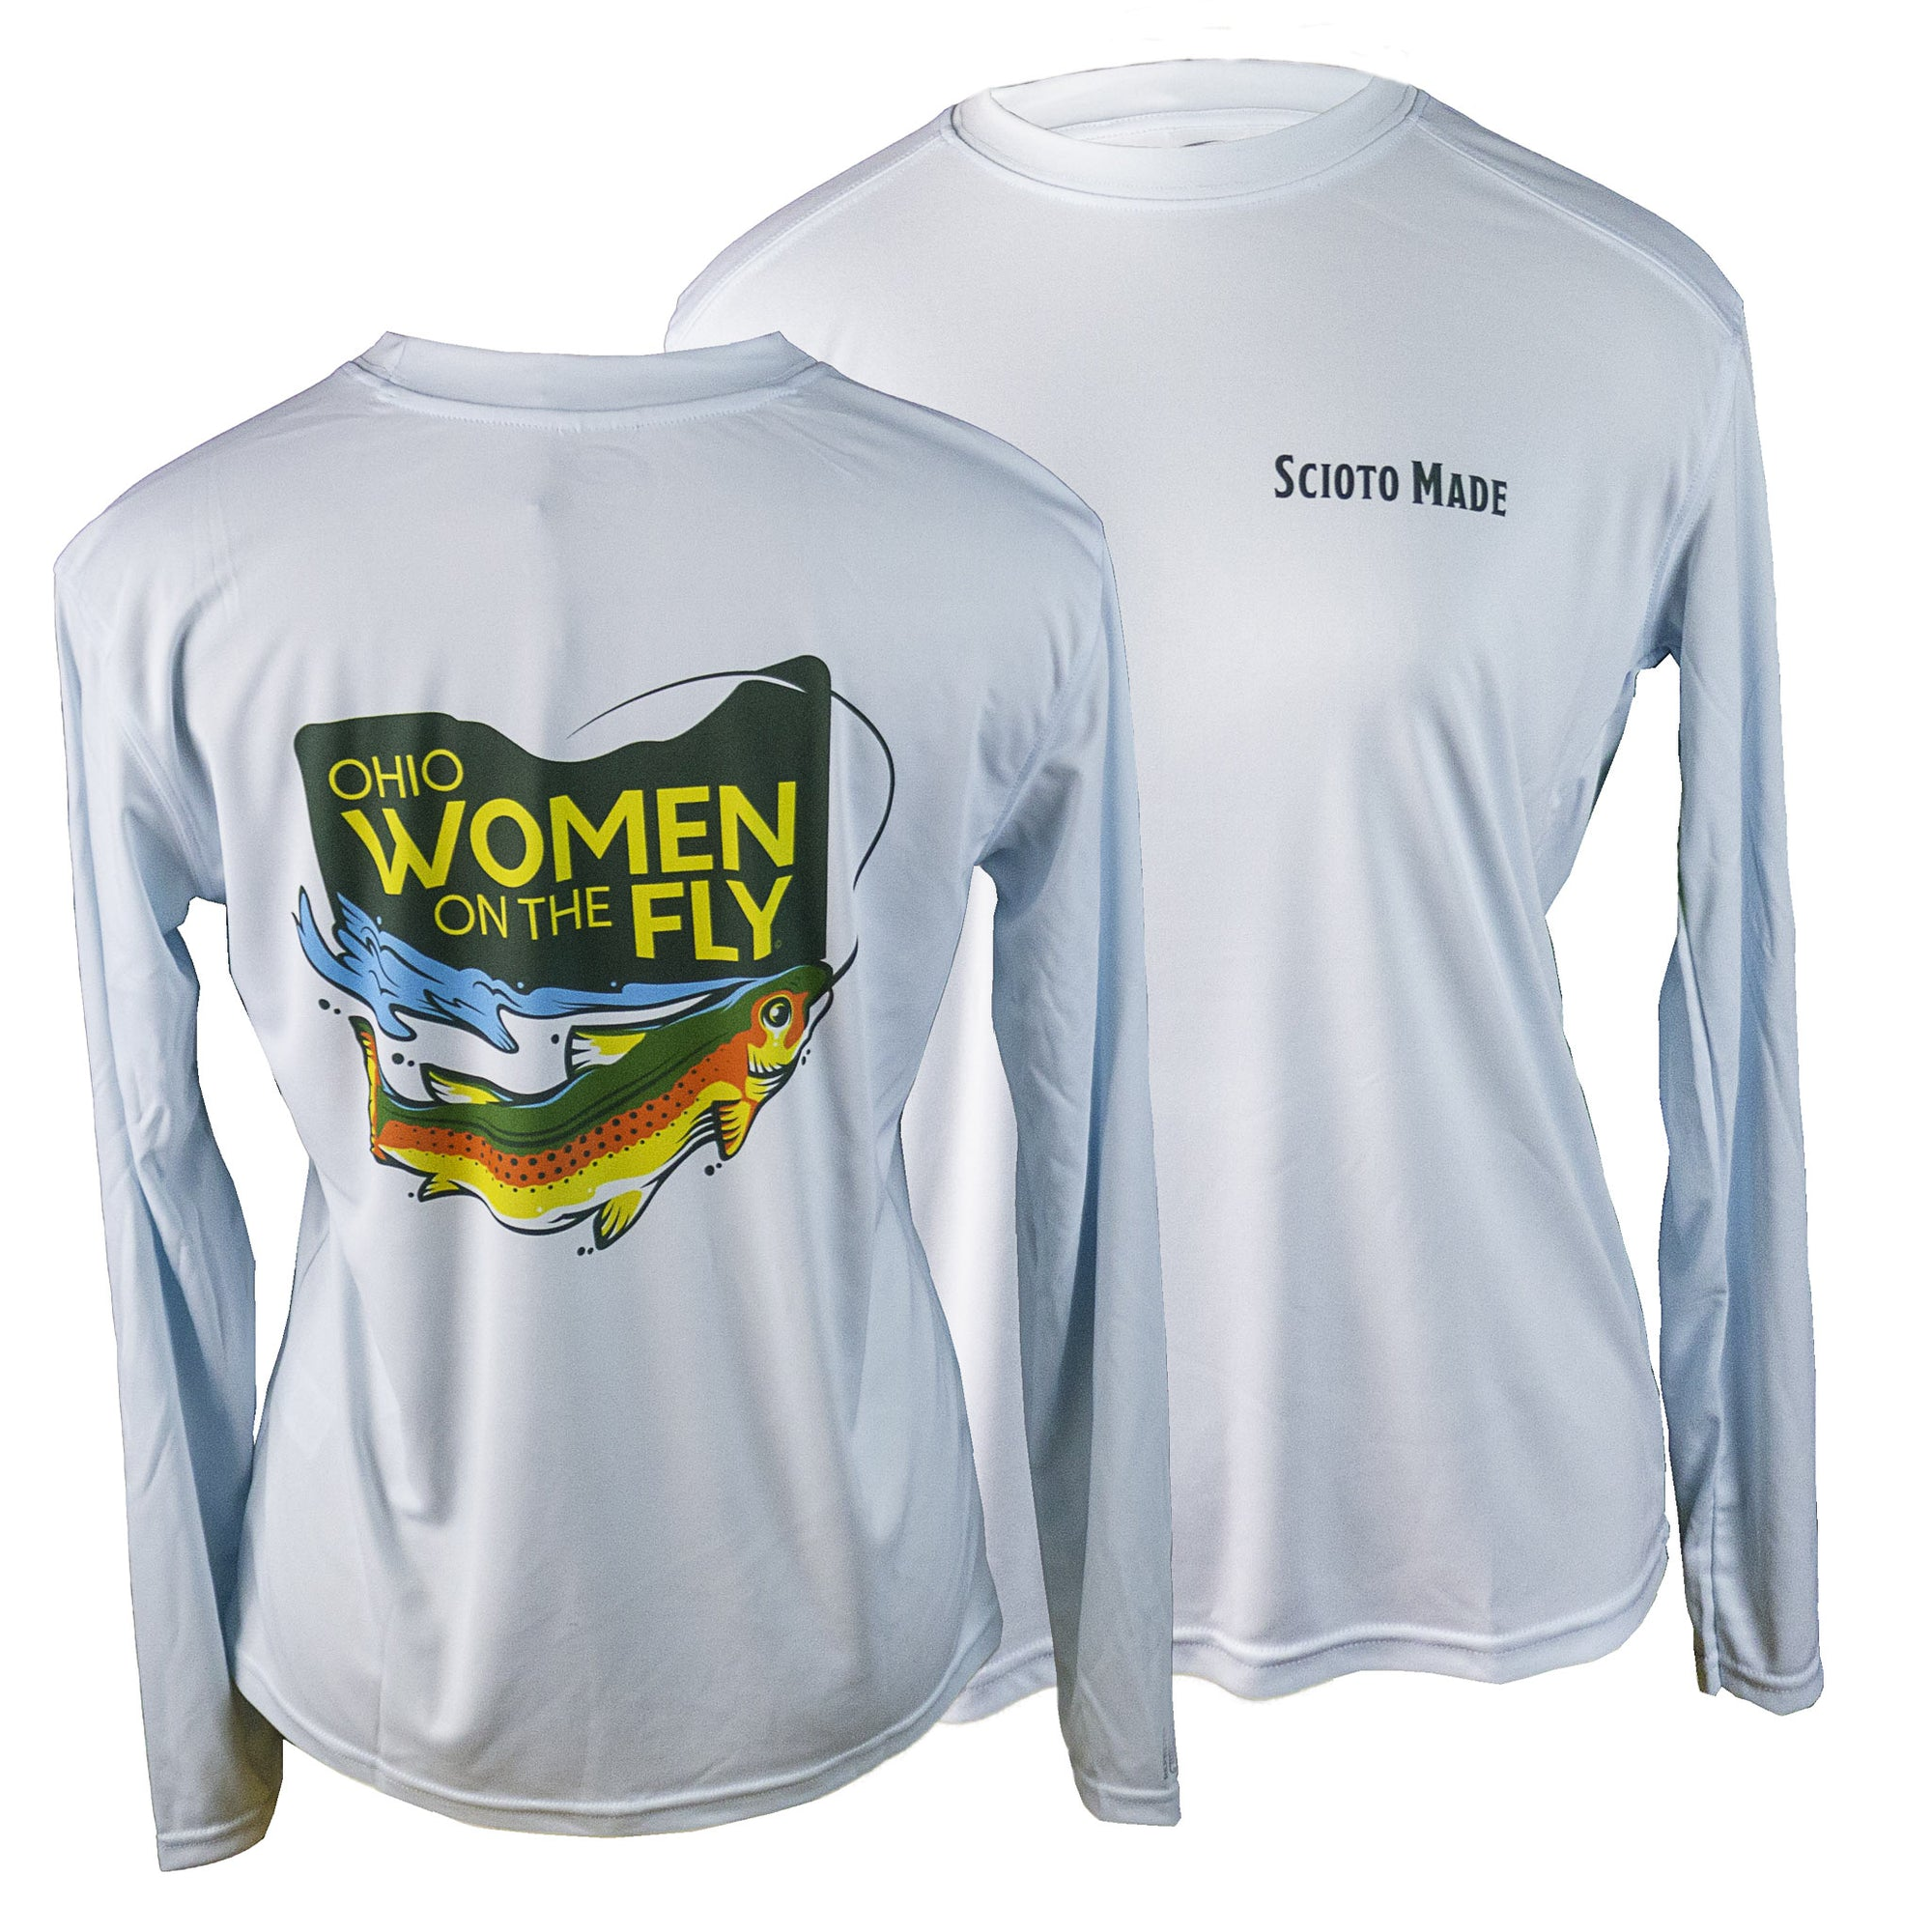 Ohio Women On The Fly Sun Shirt Artic Blue